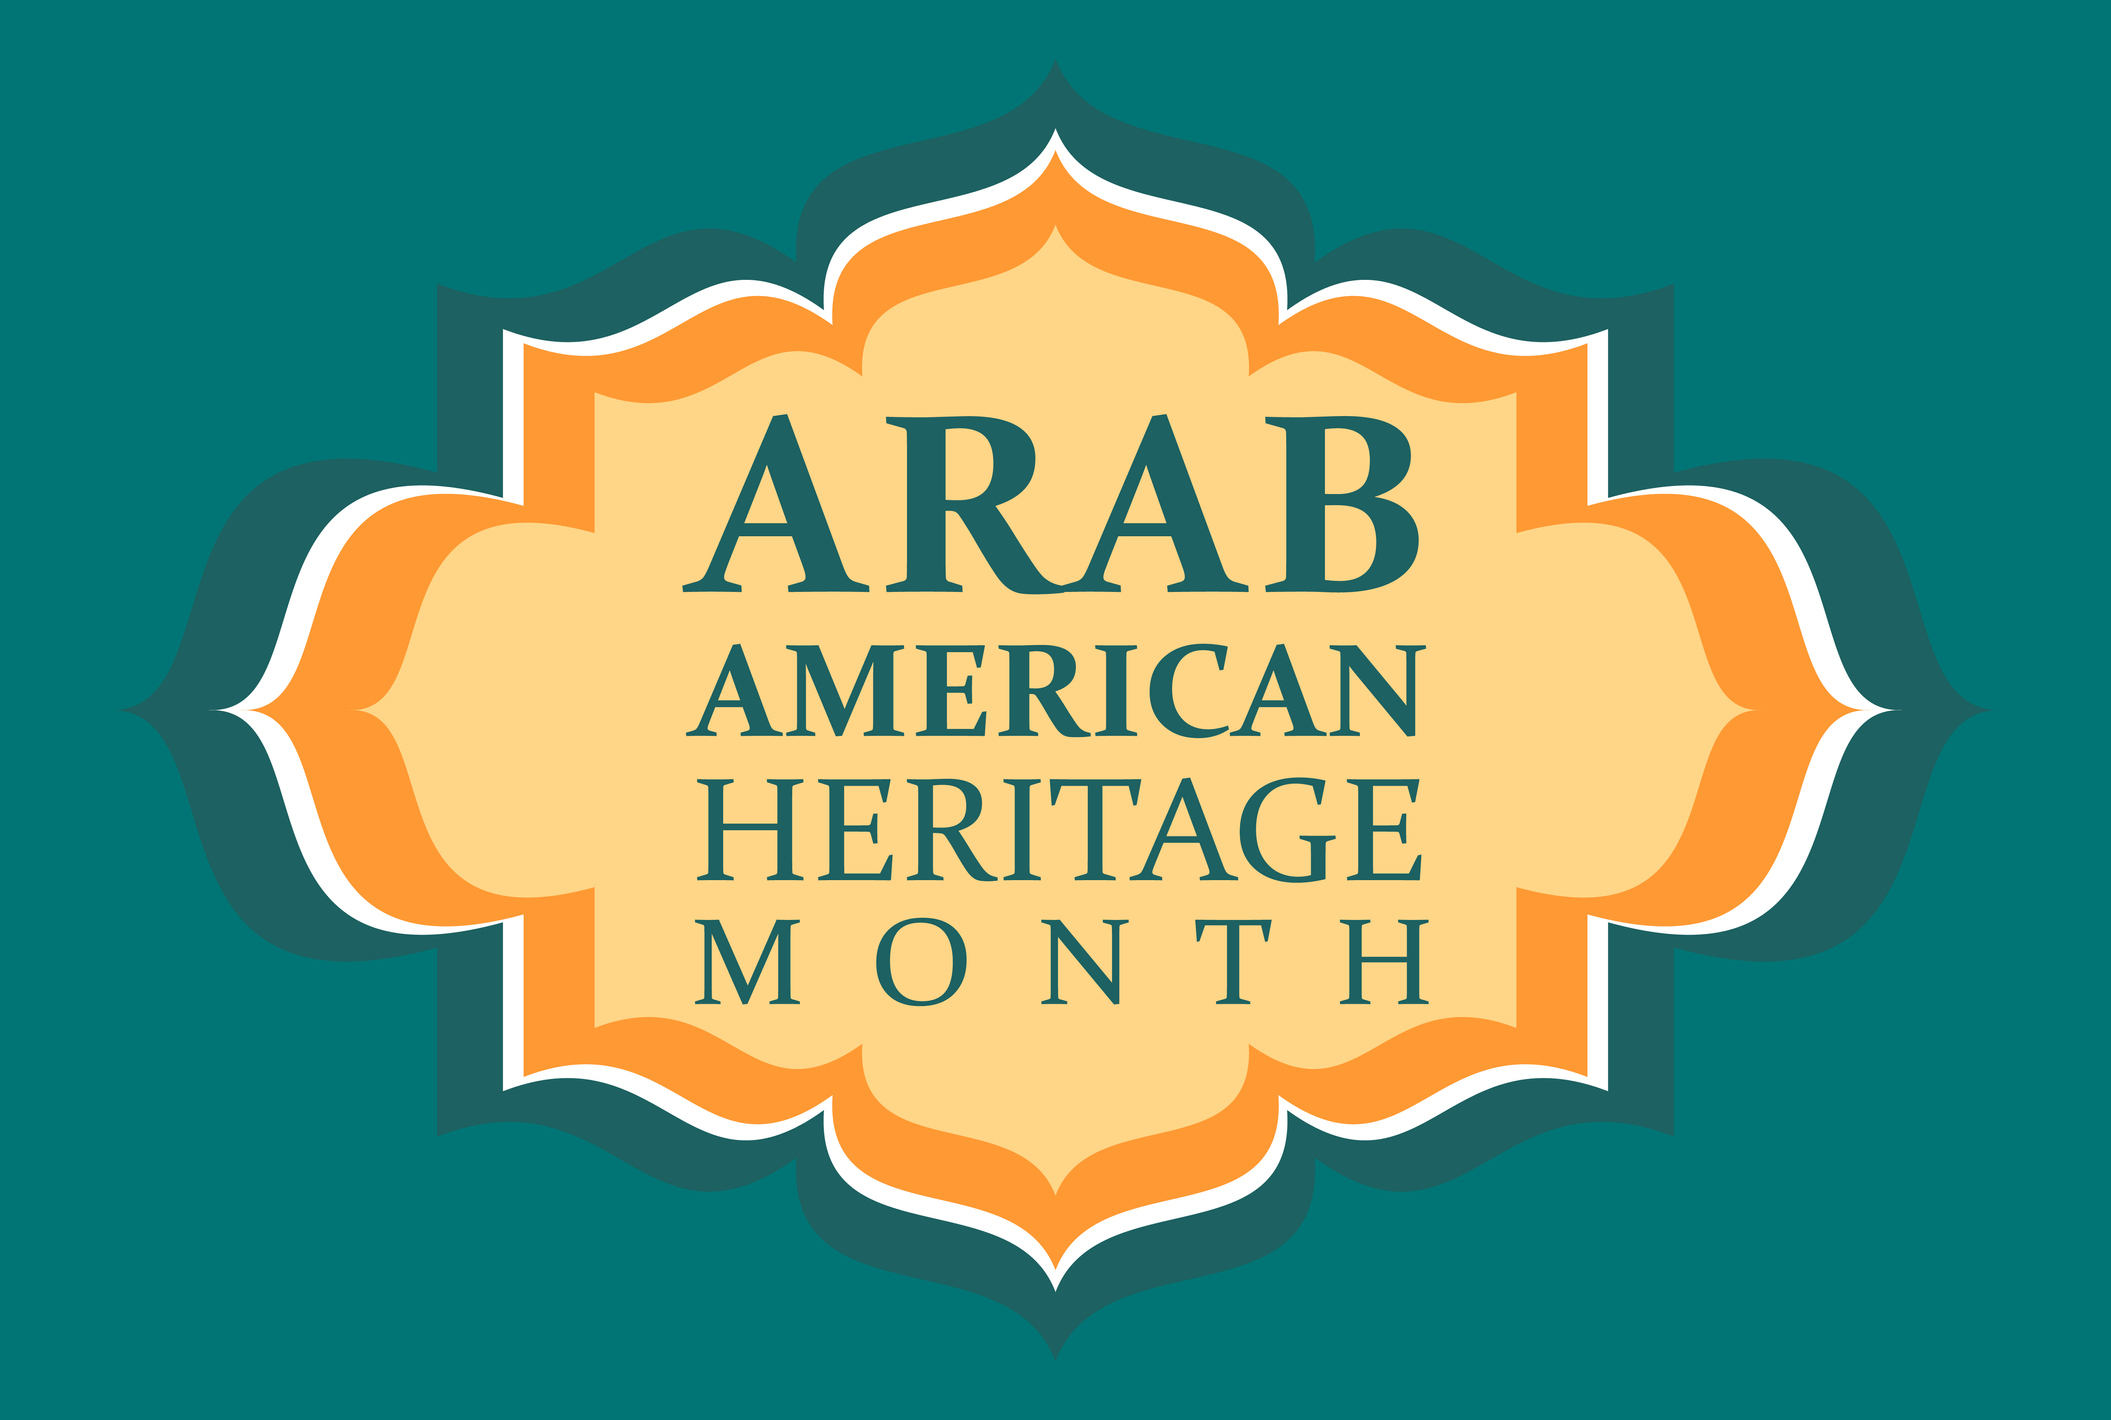 Arab American Heritage Month. Vector banner for social media, poster, greeting card. A national holiday celebrated in April in the United States by people of Arab origin.